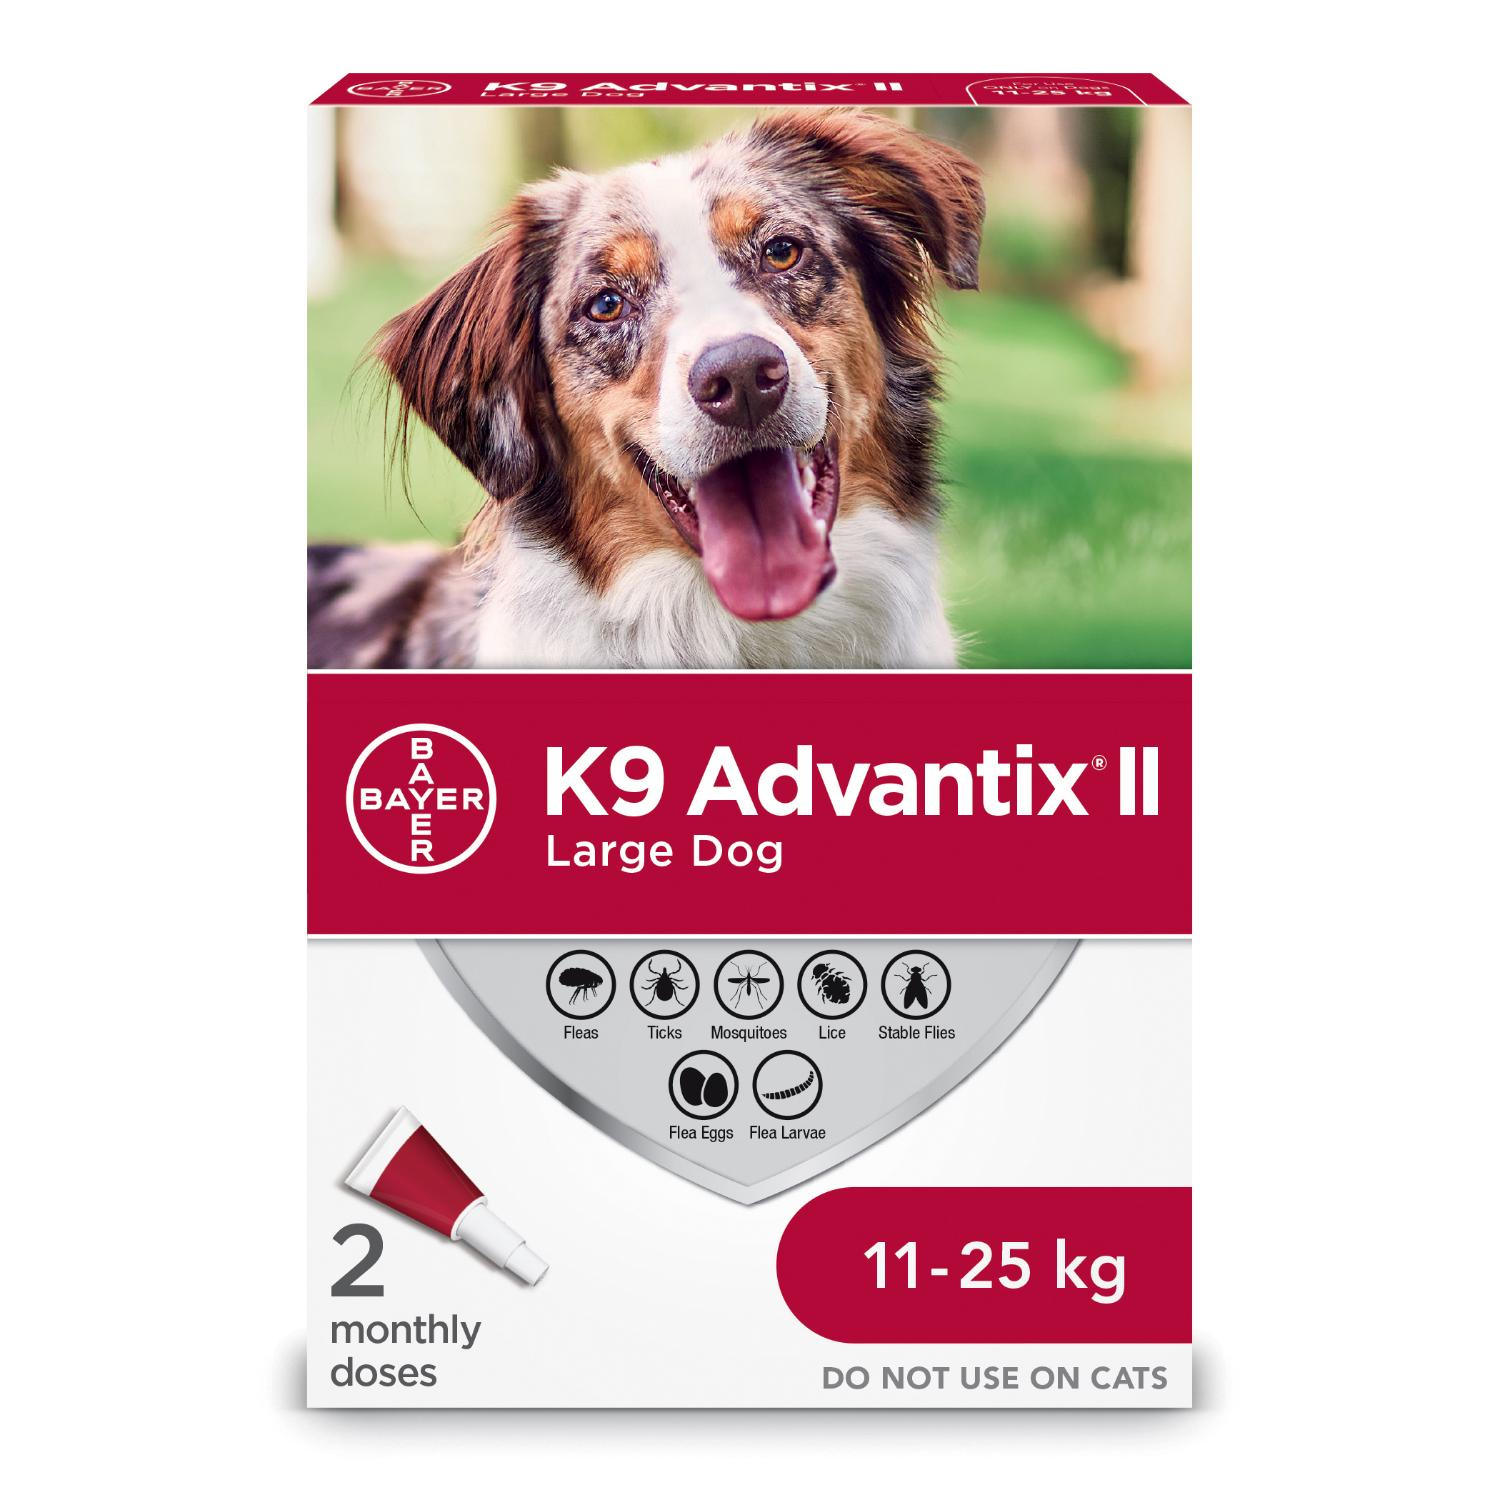 Bayer K9 Advantix II Flea Protection for Large Dogs 11-25-kg Image